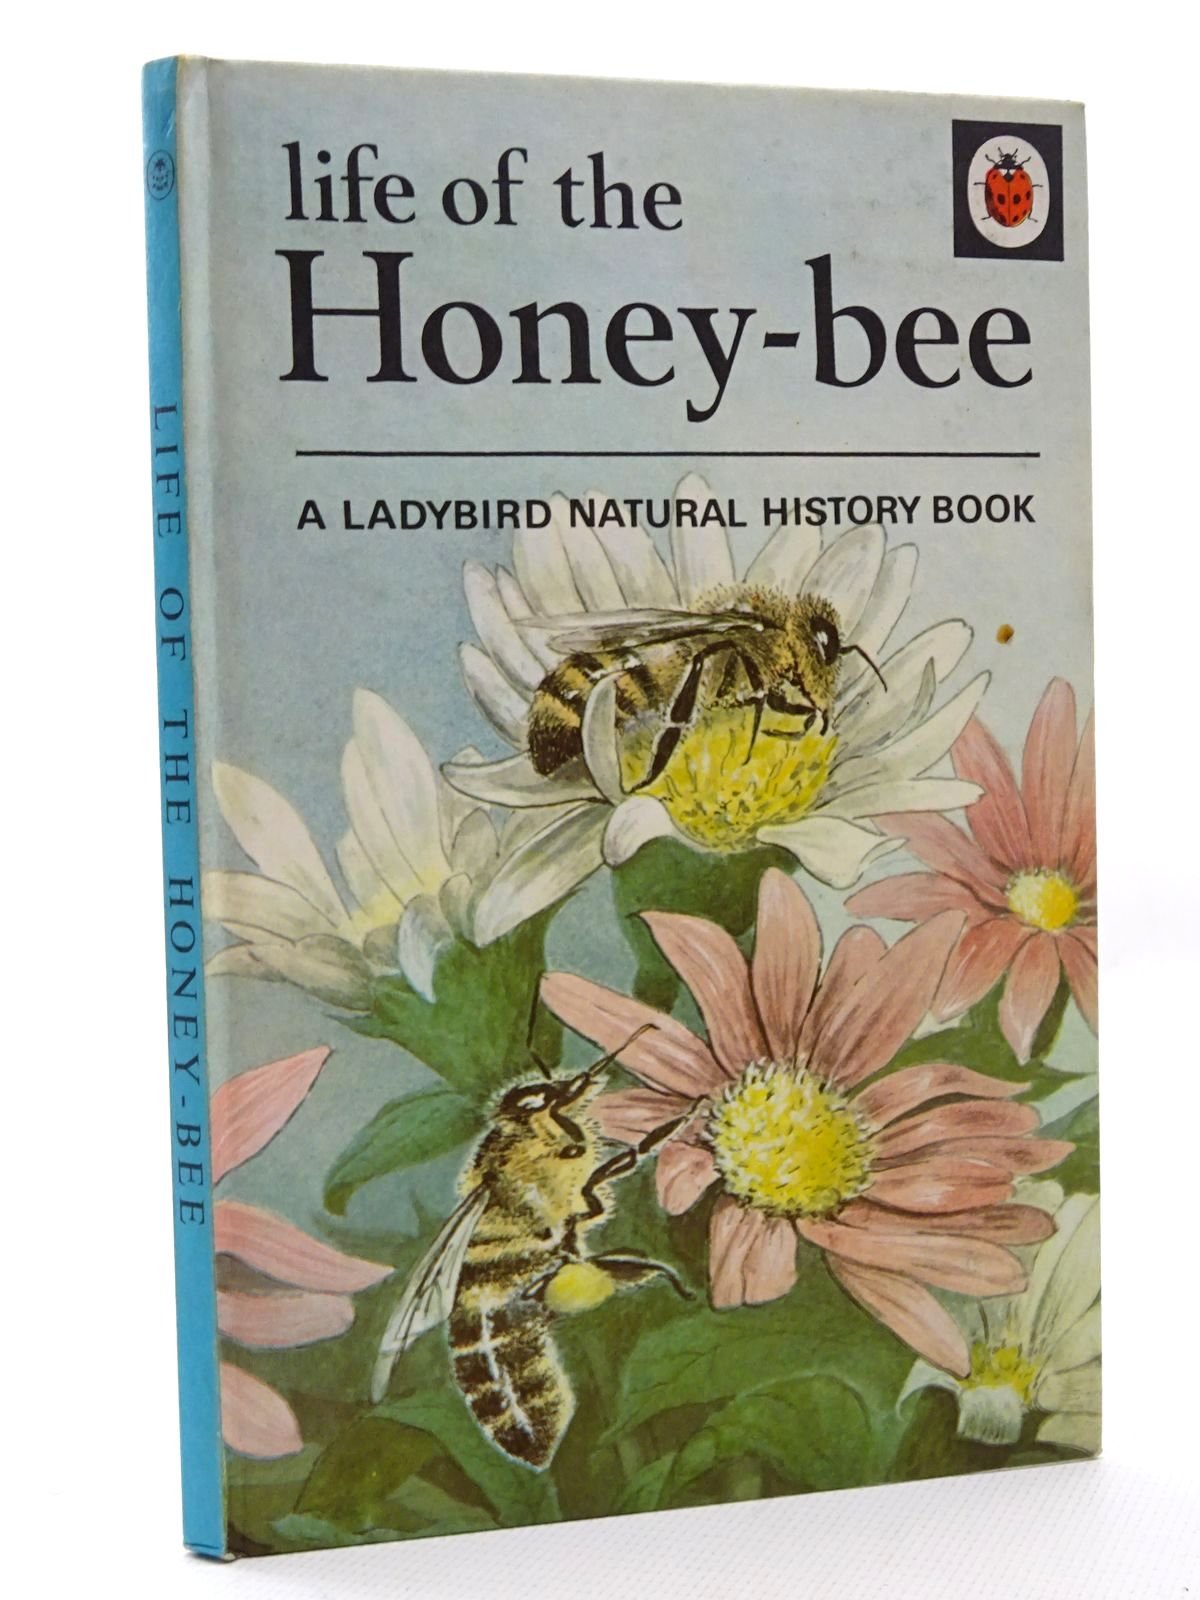 Photo of LIFE OF THE HONEY-BEE written by Sinclair, W. illustrated by Payne, Jill published by Wills & Hepworth Ltd. (STOCK CODE: 2124240)  for sale by Stella & Rose's Books